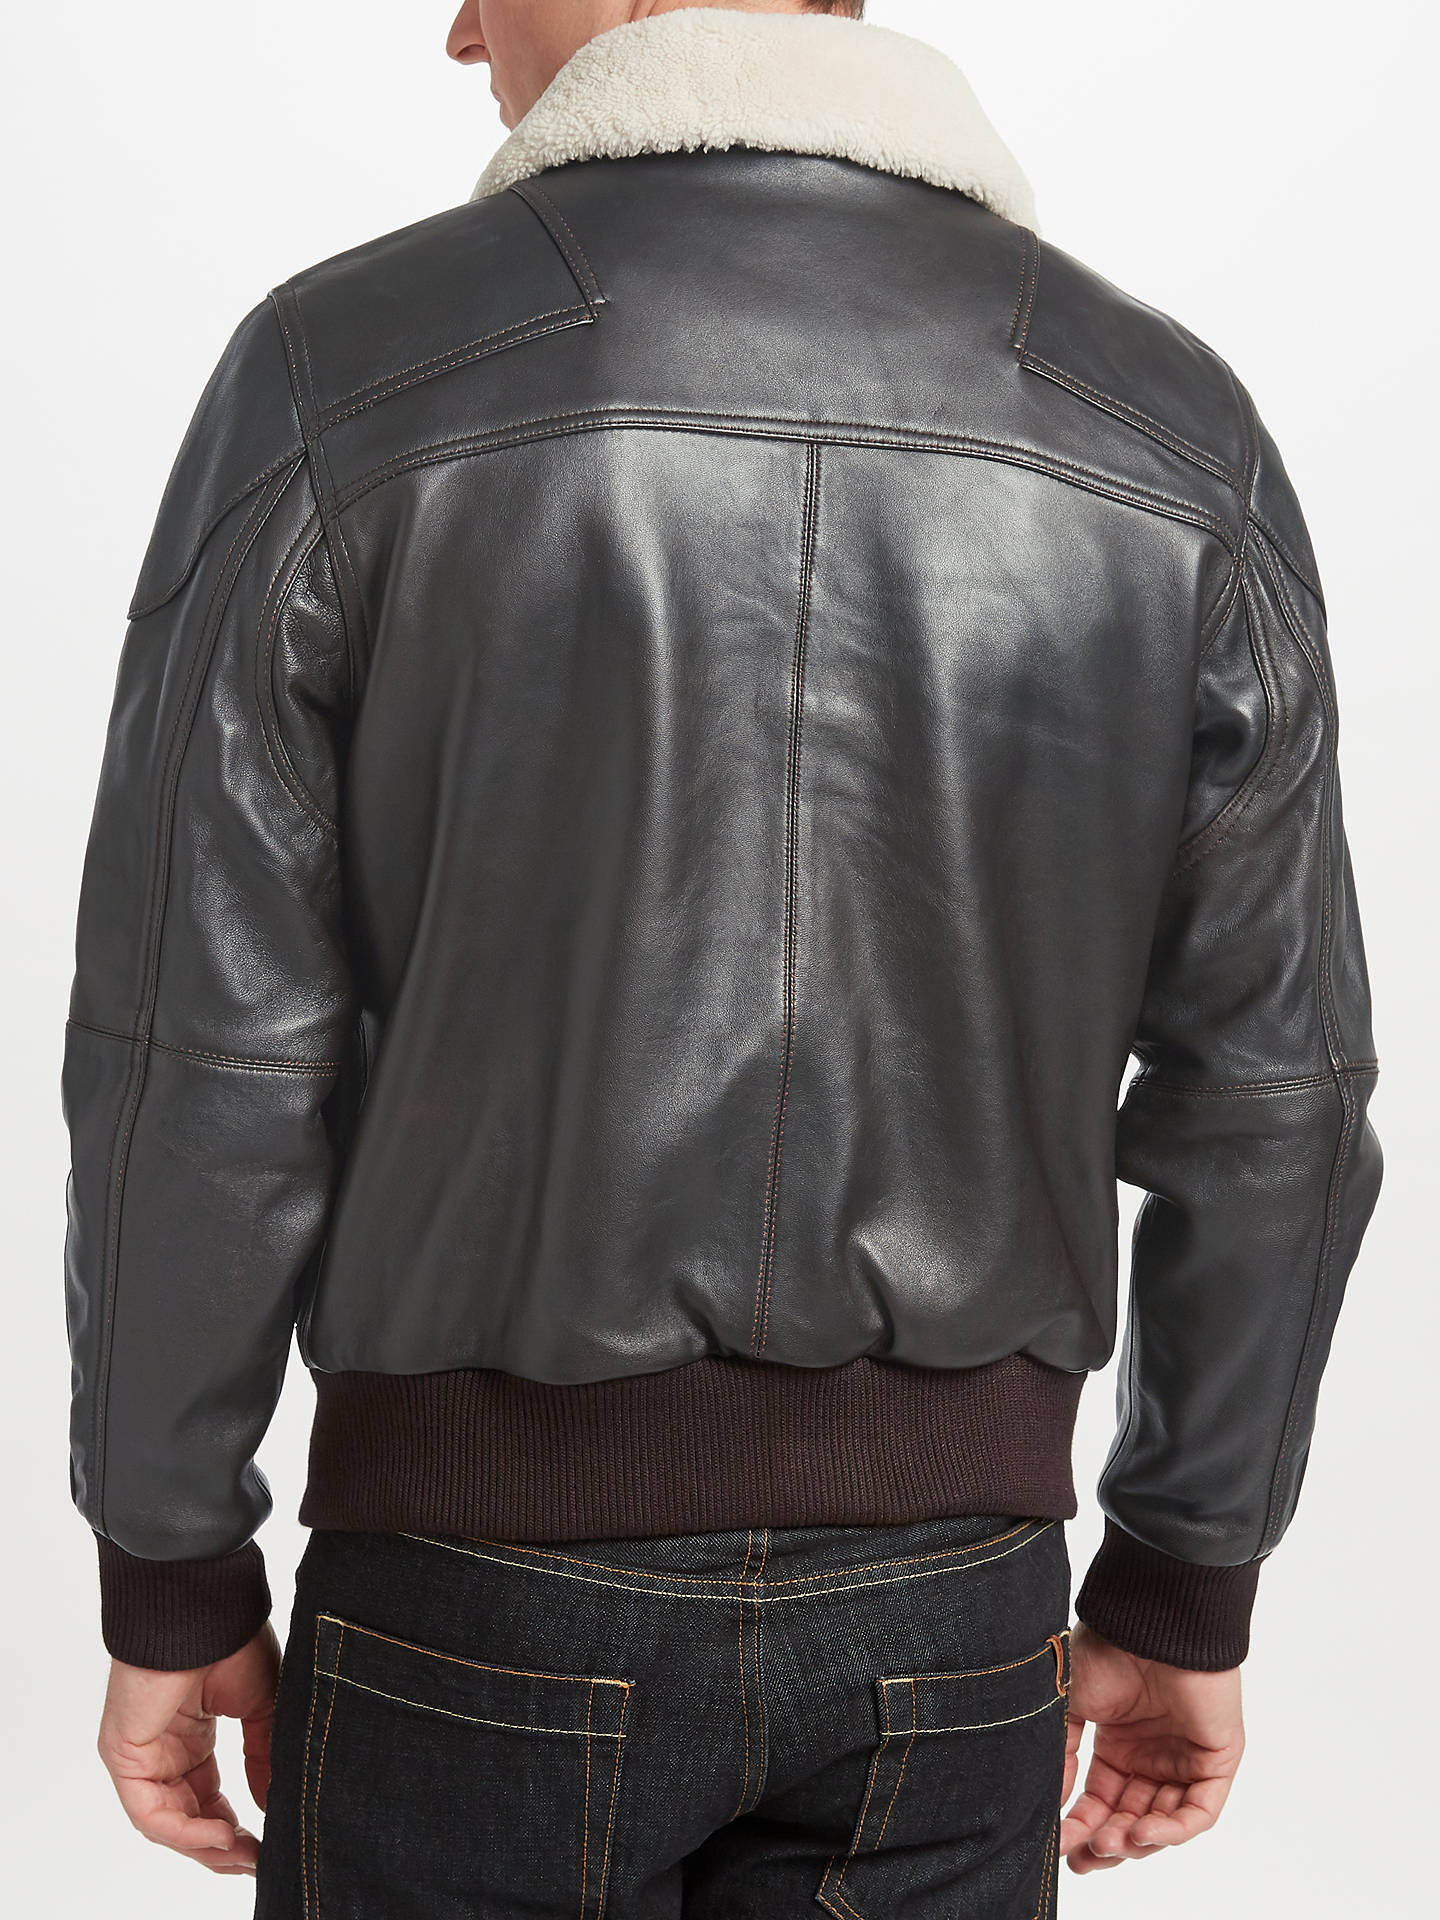 BuyJOHN LEWIS & Co. Sheepskin Collar Leather Jacket, Brown, S Online at johnlewis.com